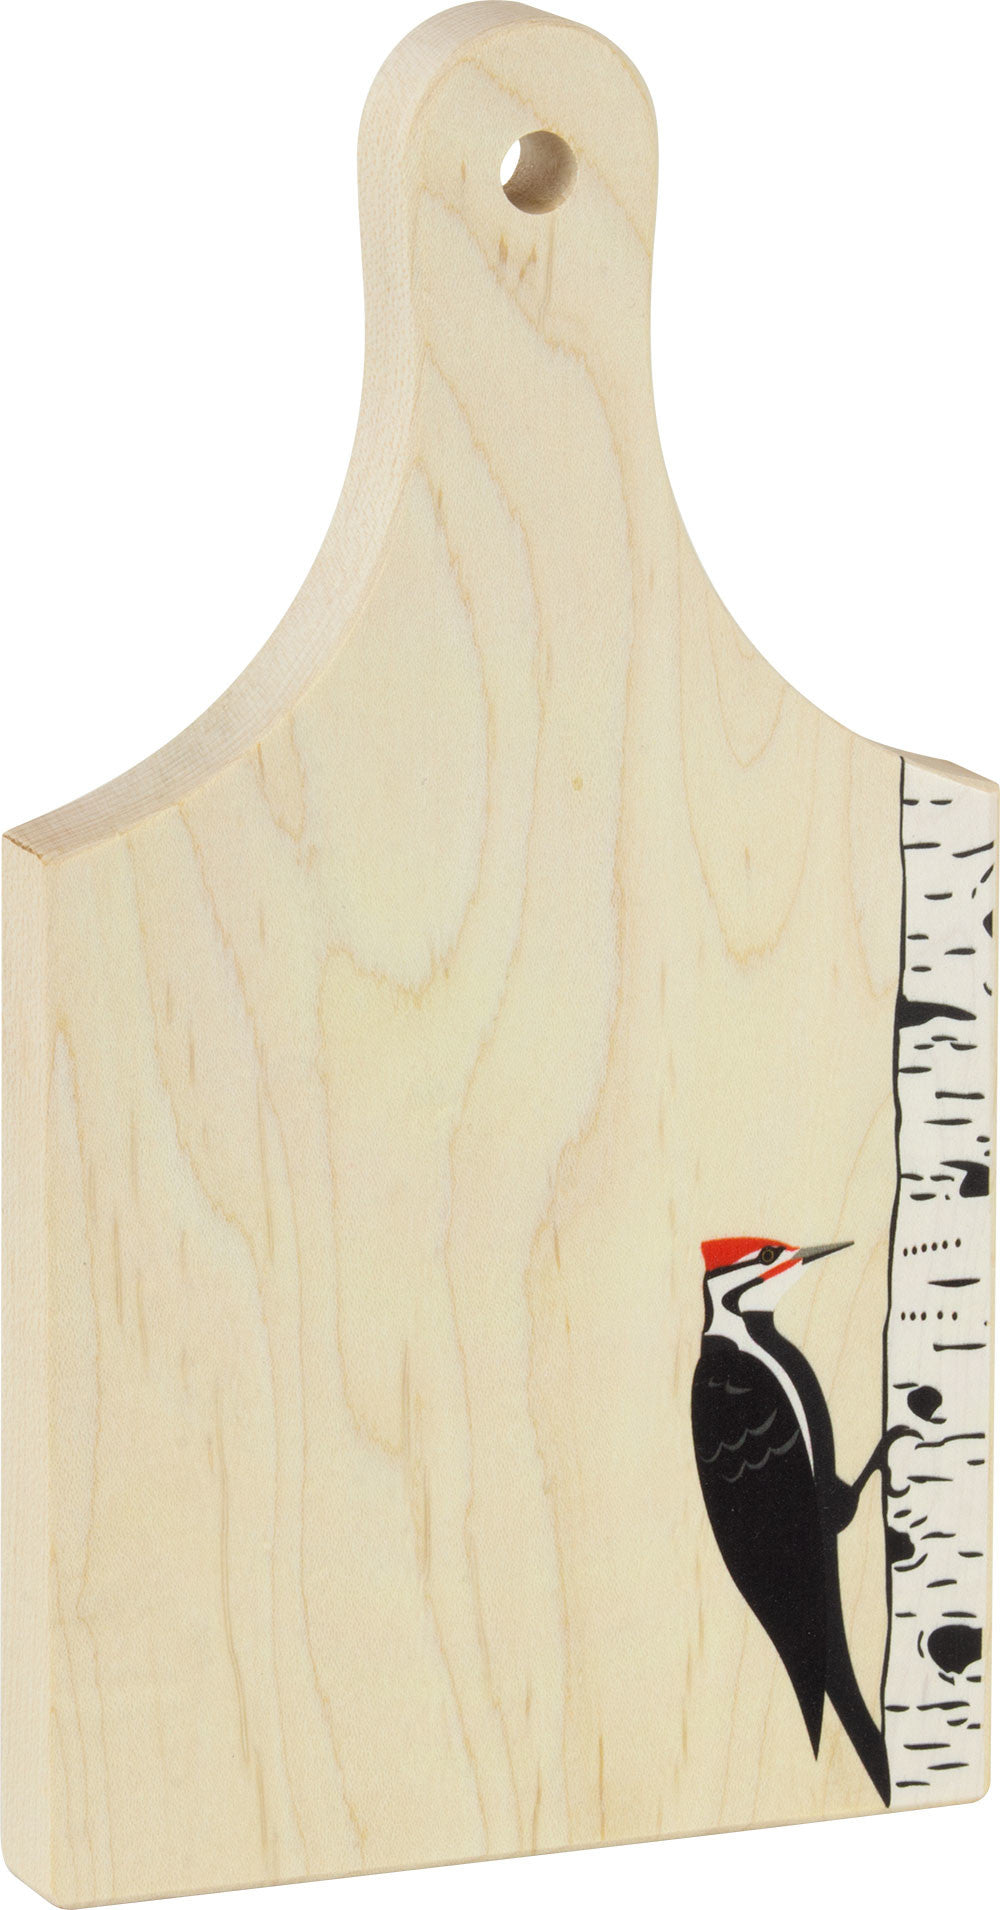 "Woodpecker 9"" Cutting Board - Heart of the Home PA"